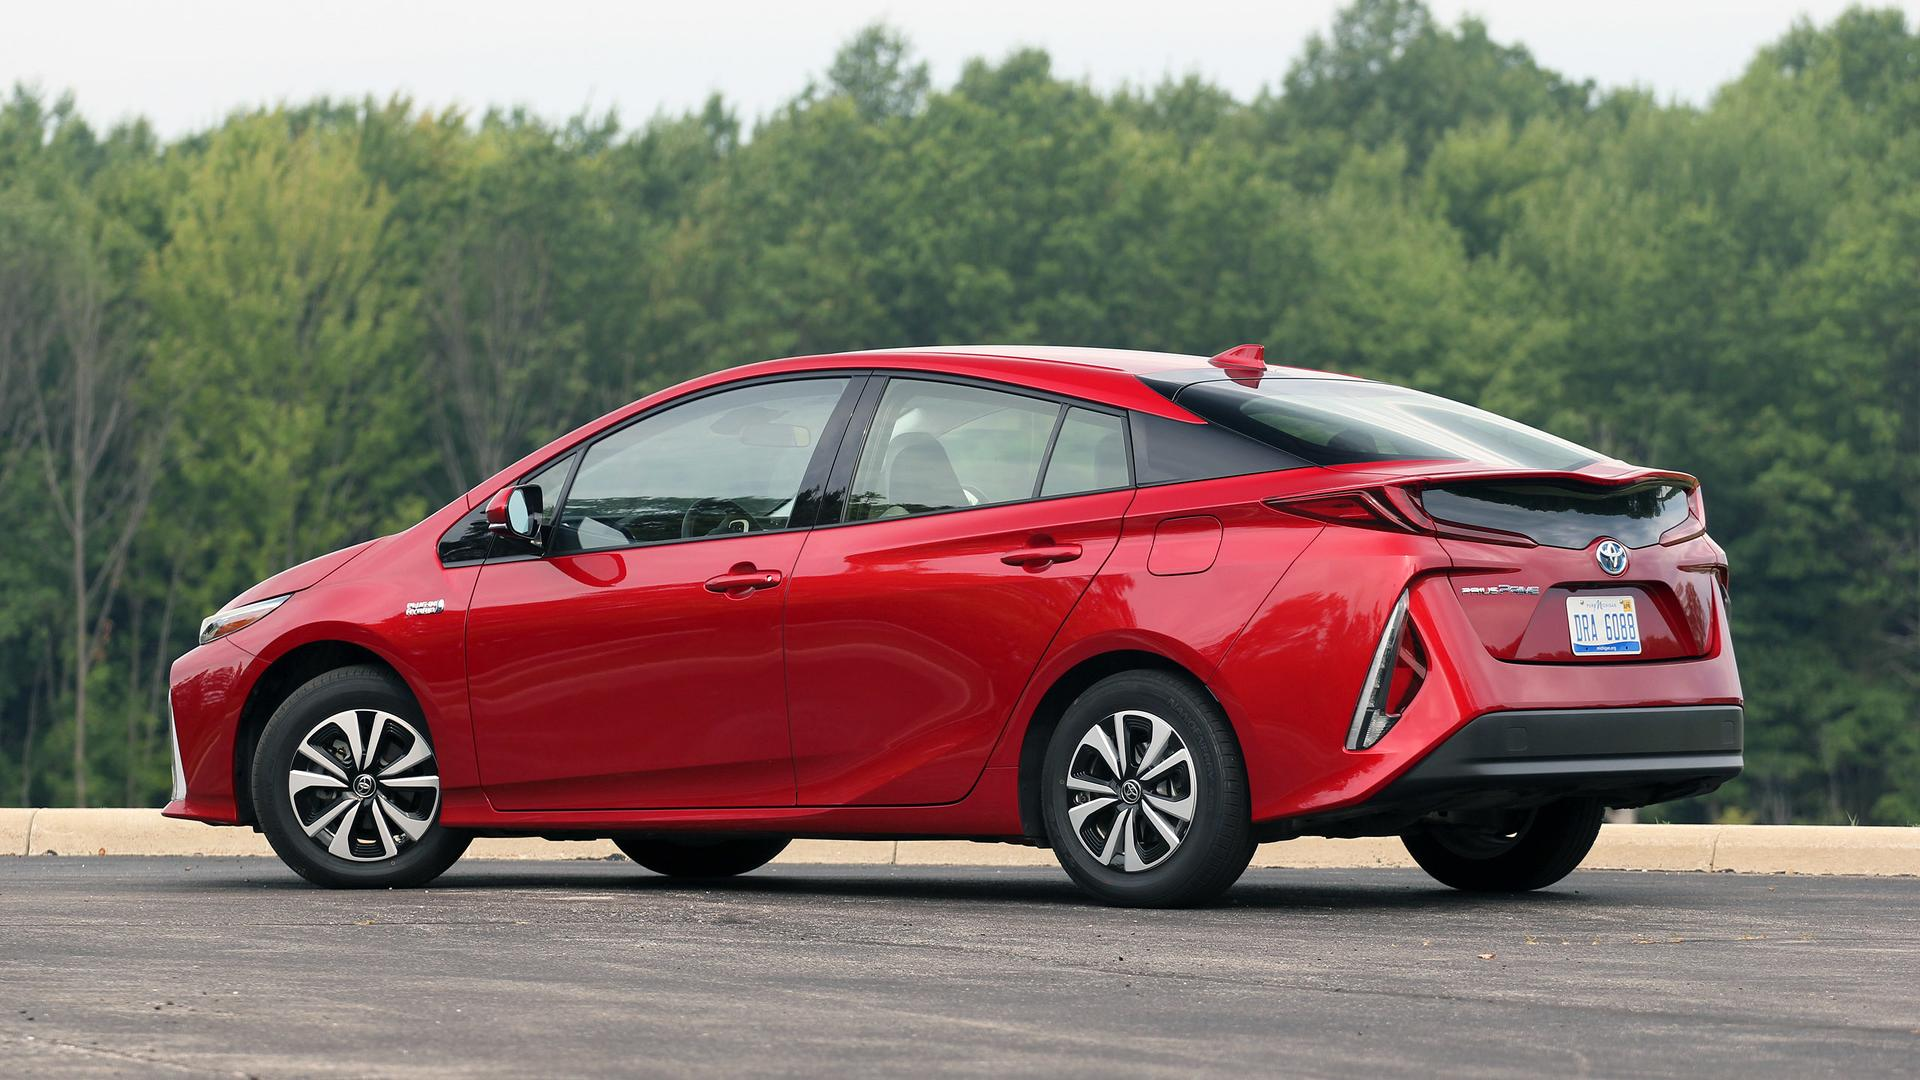 2017 Toyota Prius Prime Review The Argument Against Cord Cutting